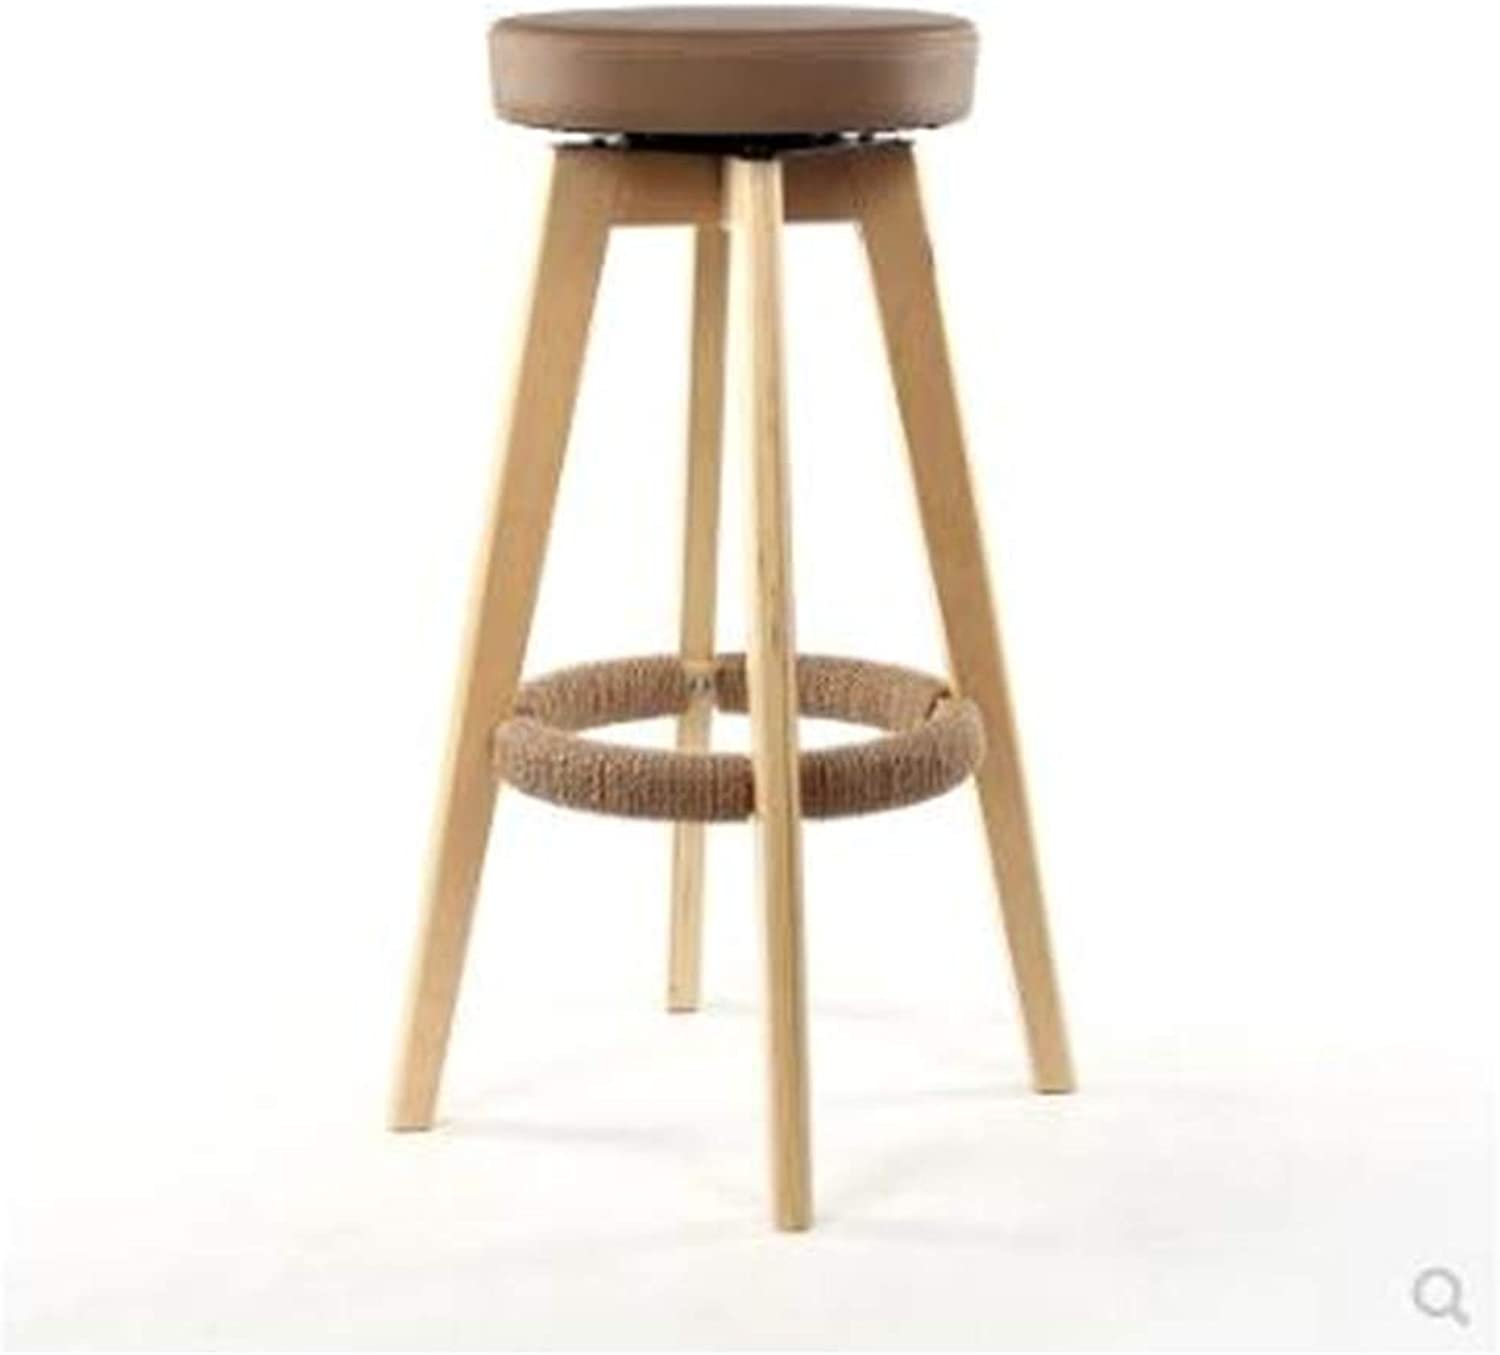 European Bar Stools Composite Solid Wood Retro High Stool Bar Stool Bar Stool Front High Stool Wooden Coffee Chair